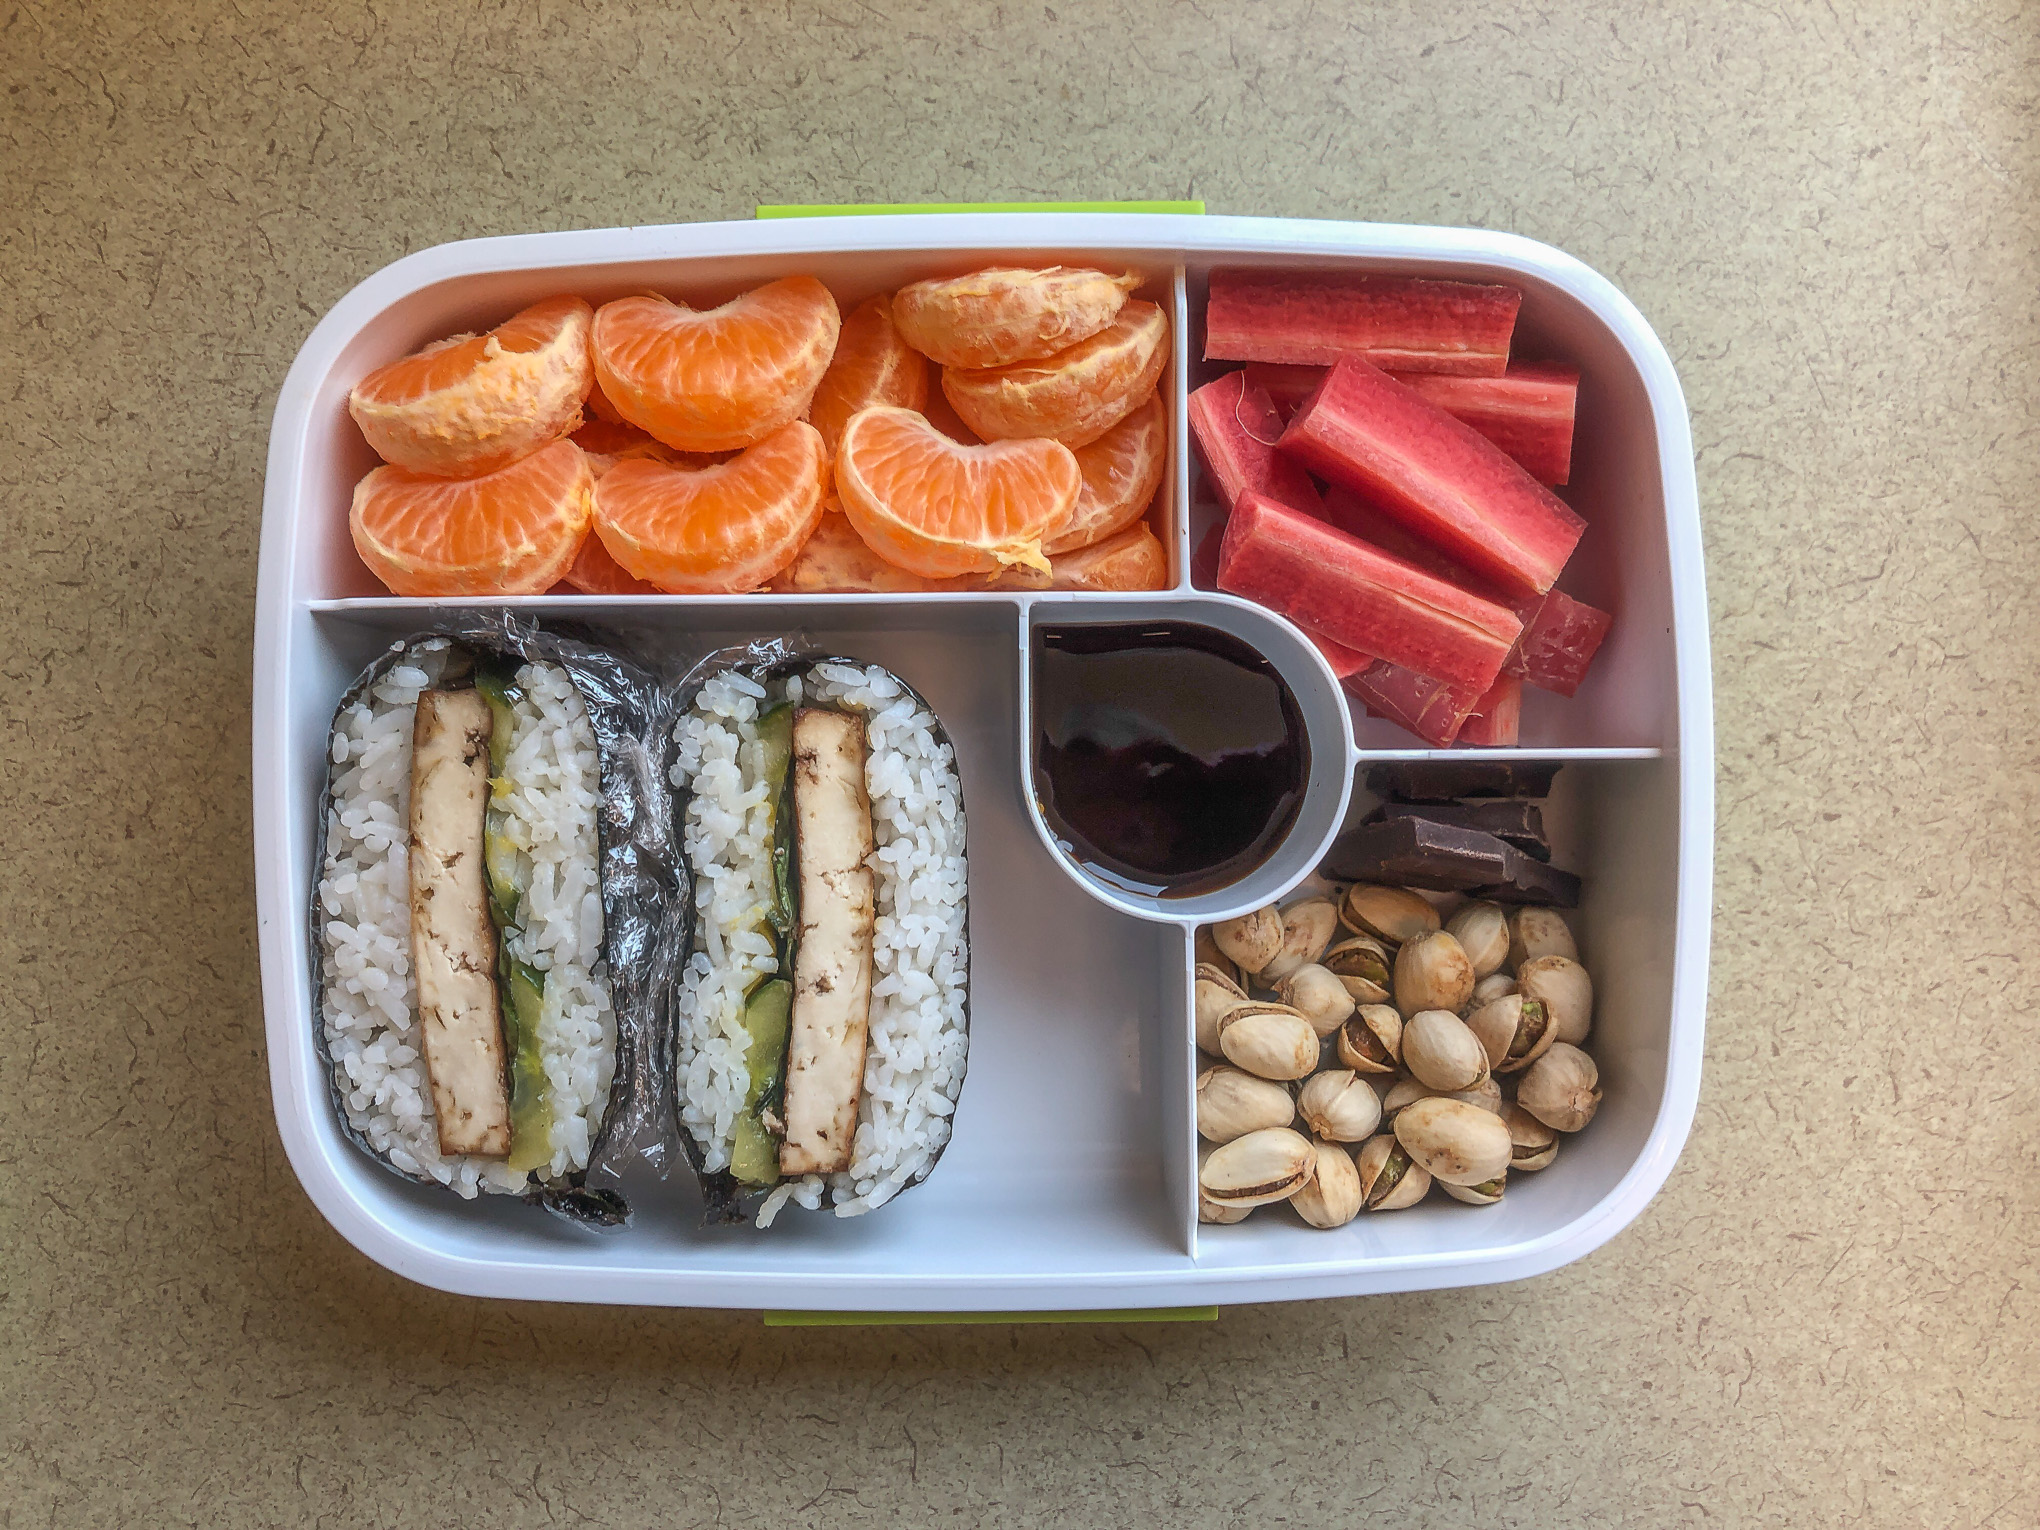 Bento box filled with sushi sandwiches and fruit